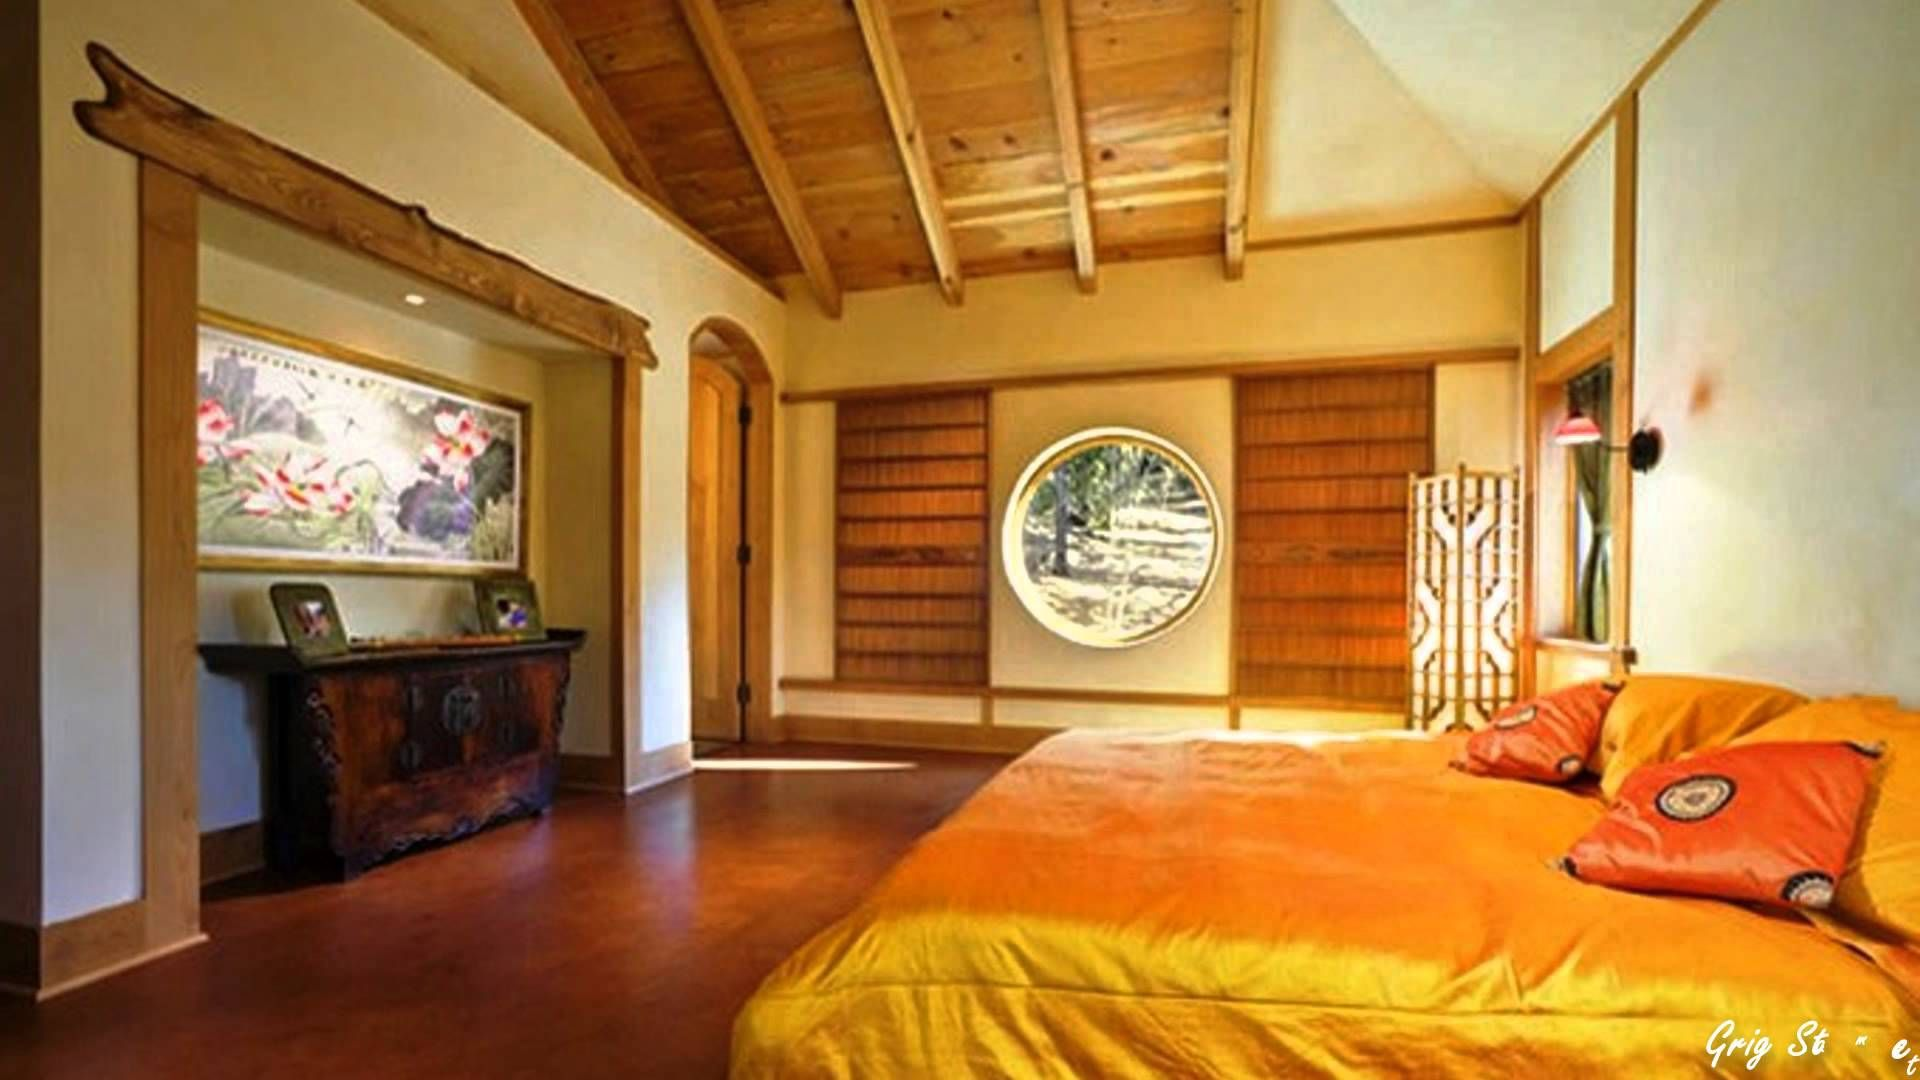 Traditional japanese style bedroom - Japanese Traditional House Interior Design Pure And Peaceful